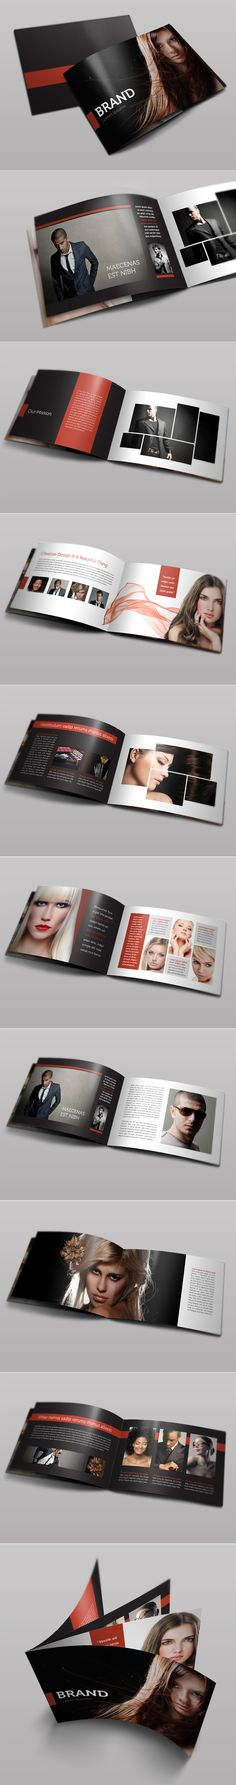 Bifold Brochure. love the simplicity of the layout and use of photos inside the shapes.